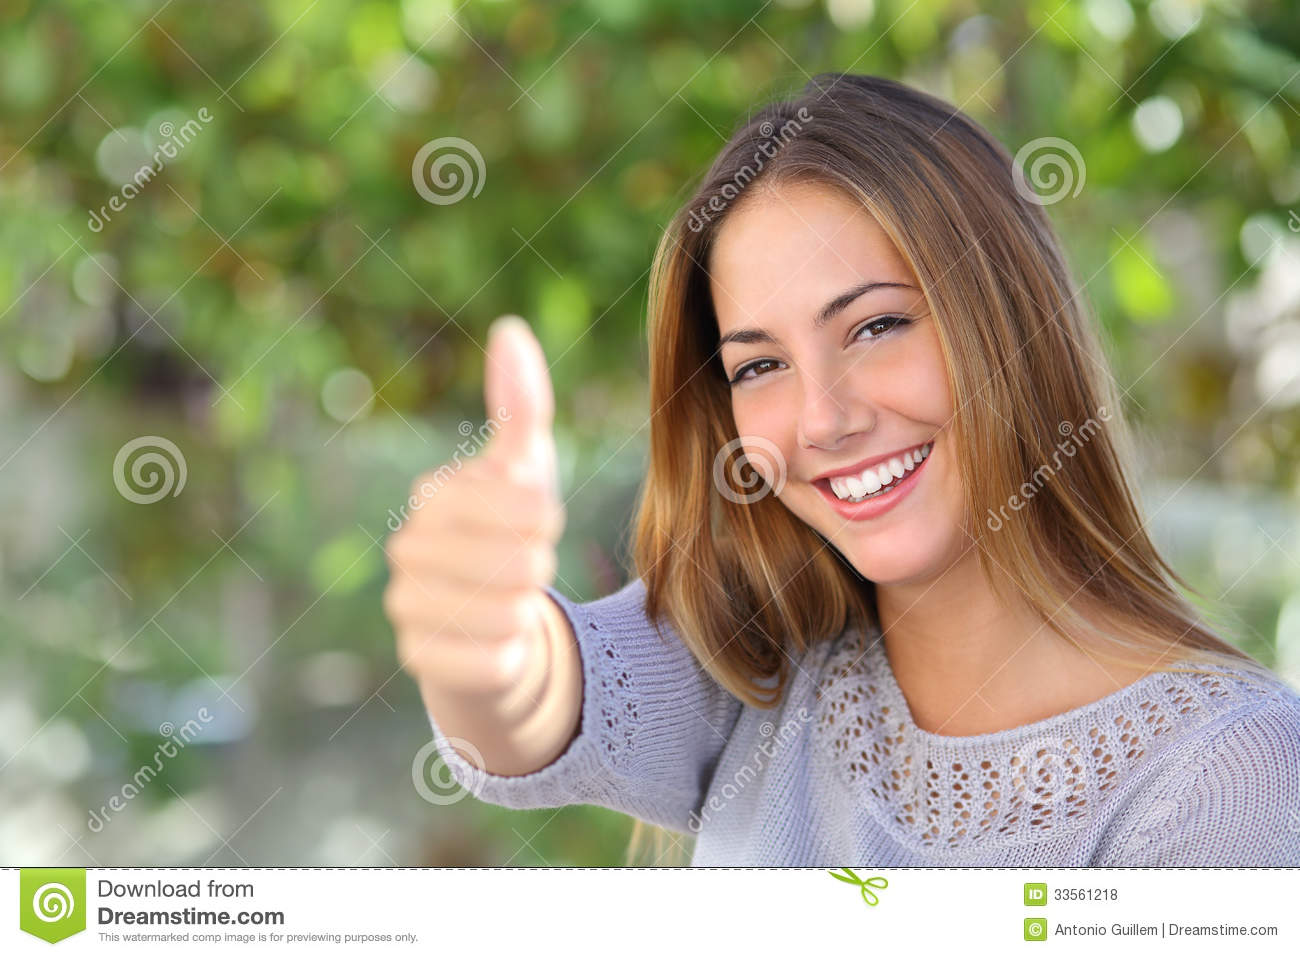 Beautiful woman agreement with thumb up outdoor